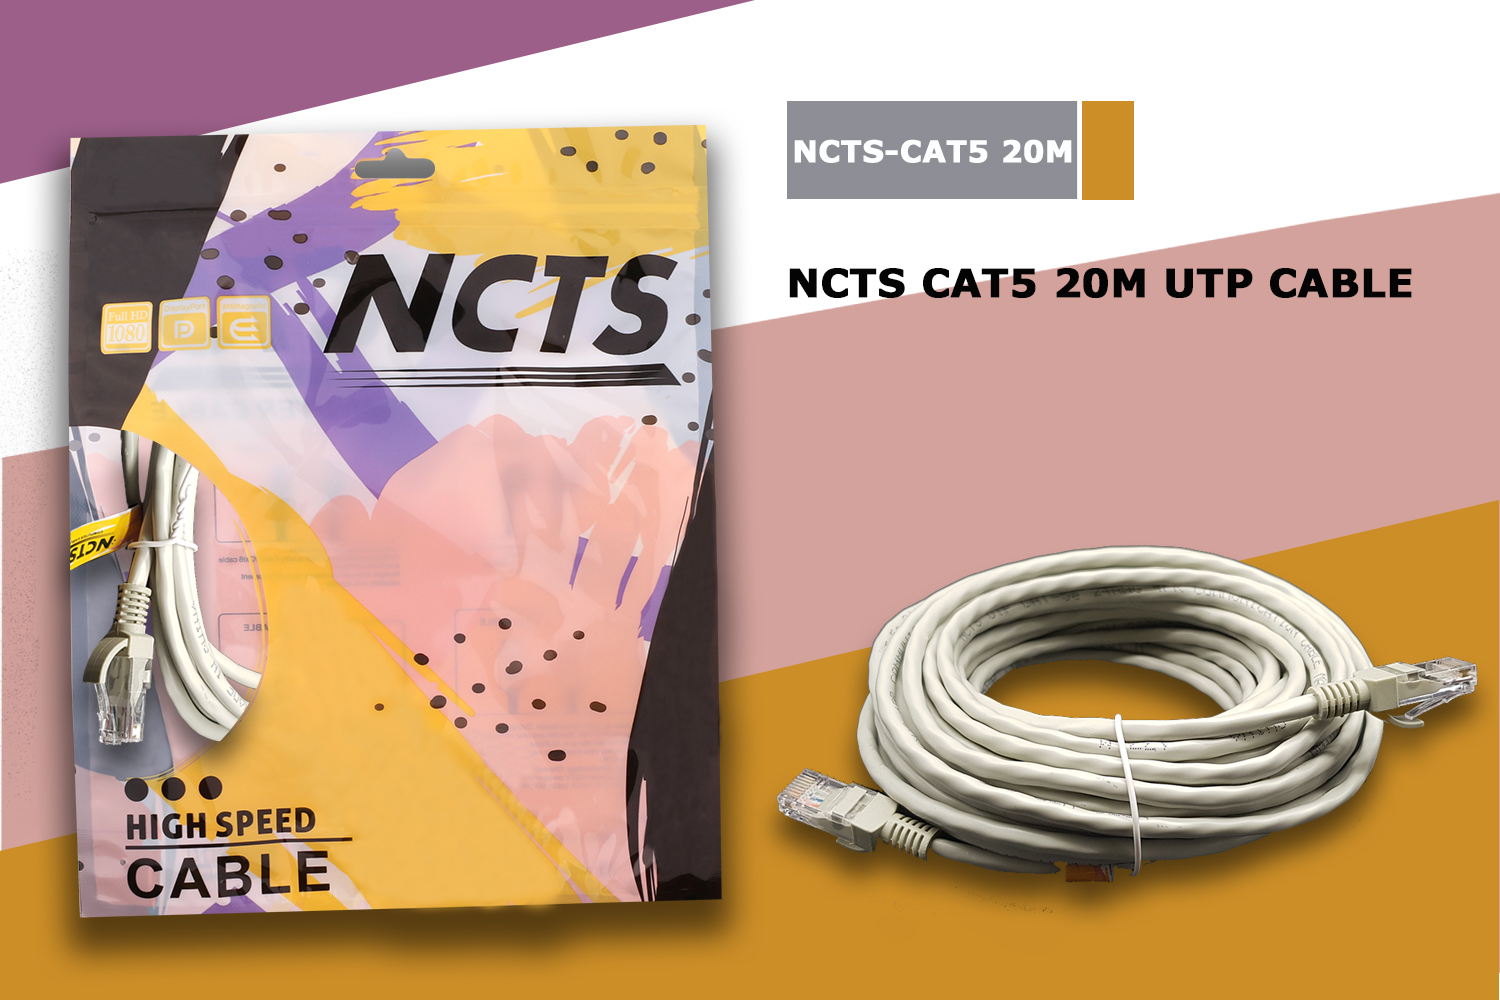 NCTS CAT5 UTP 20M,24AWG 4PR,7*8*0.12mm CCA